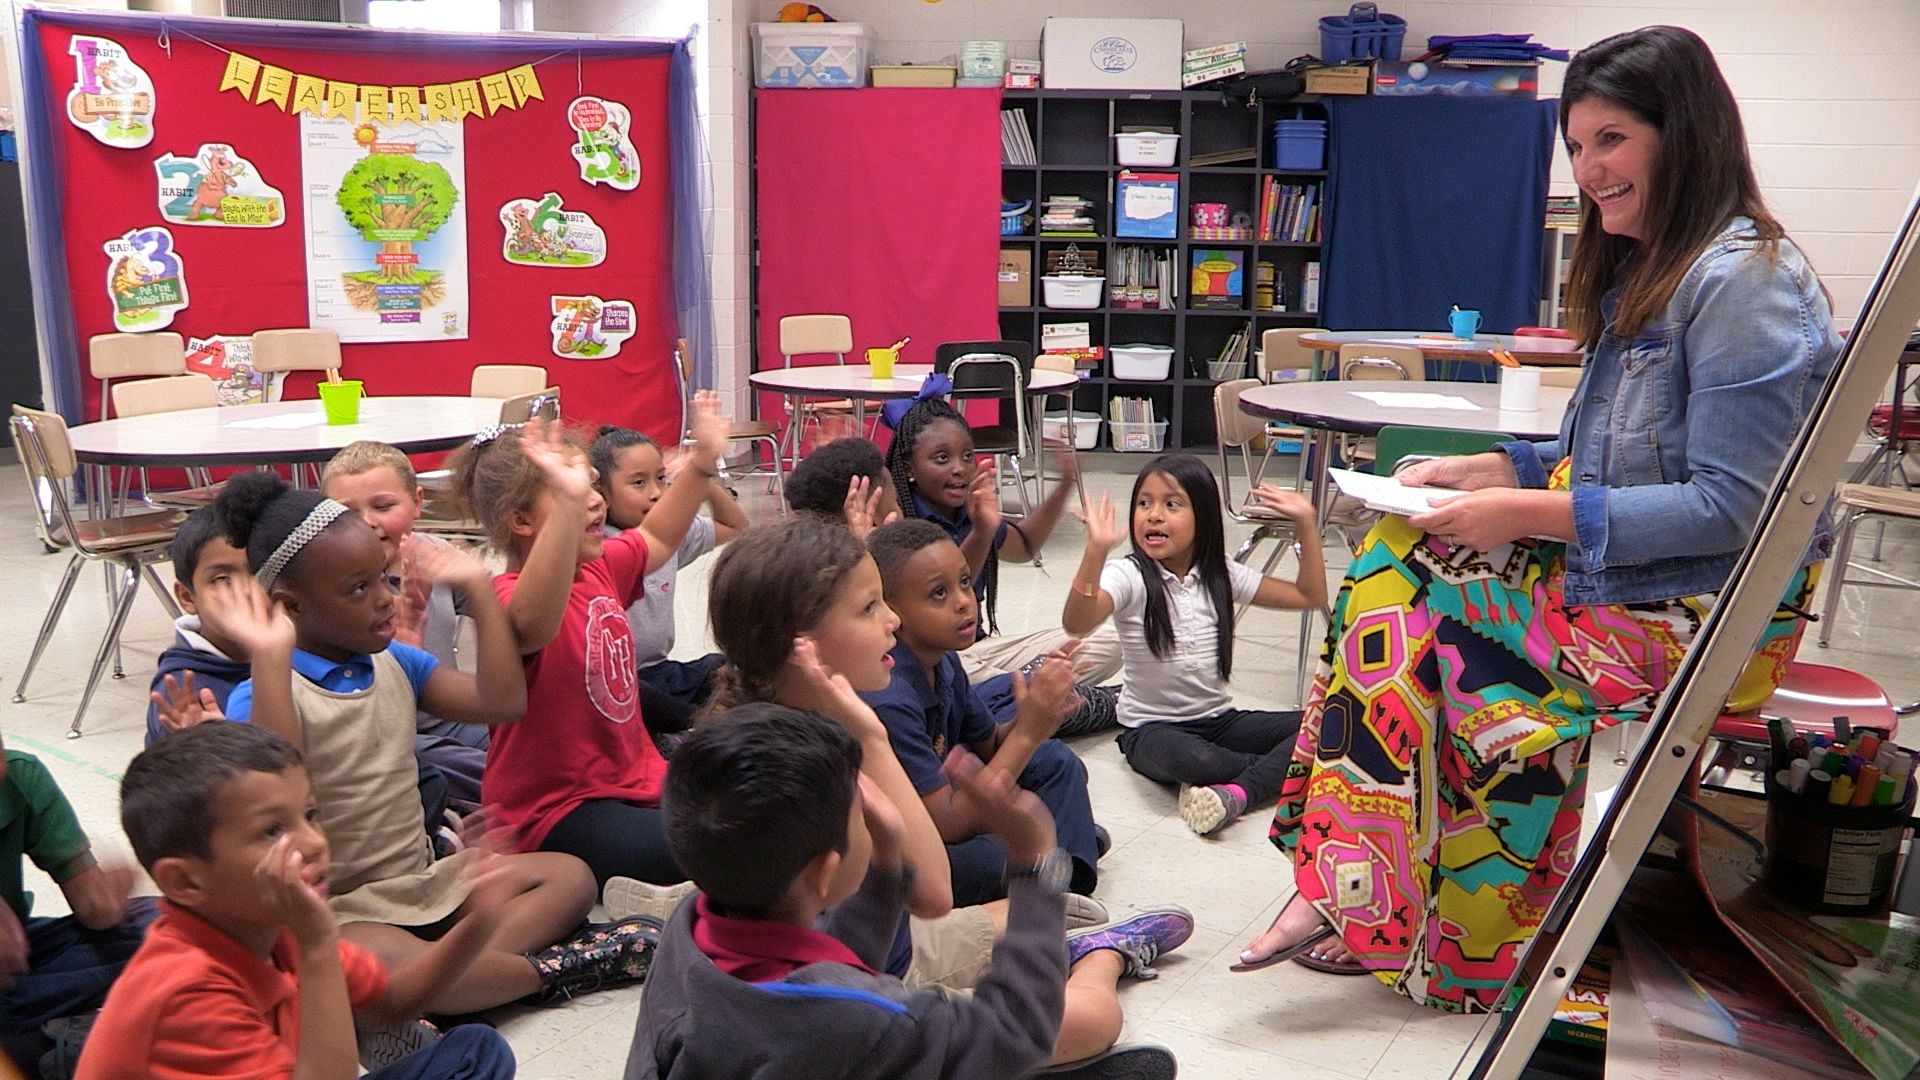 A teacher at work with a class at Fall-Hamilton Elementary